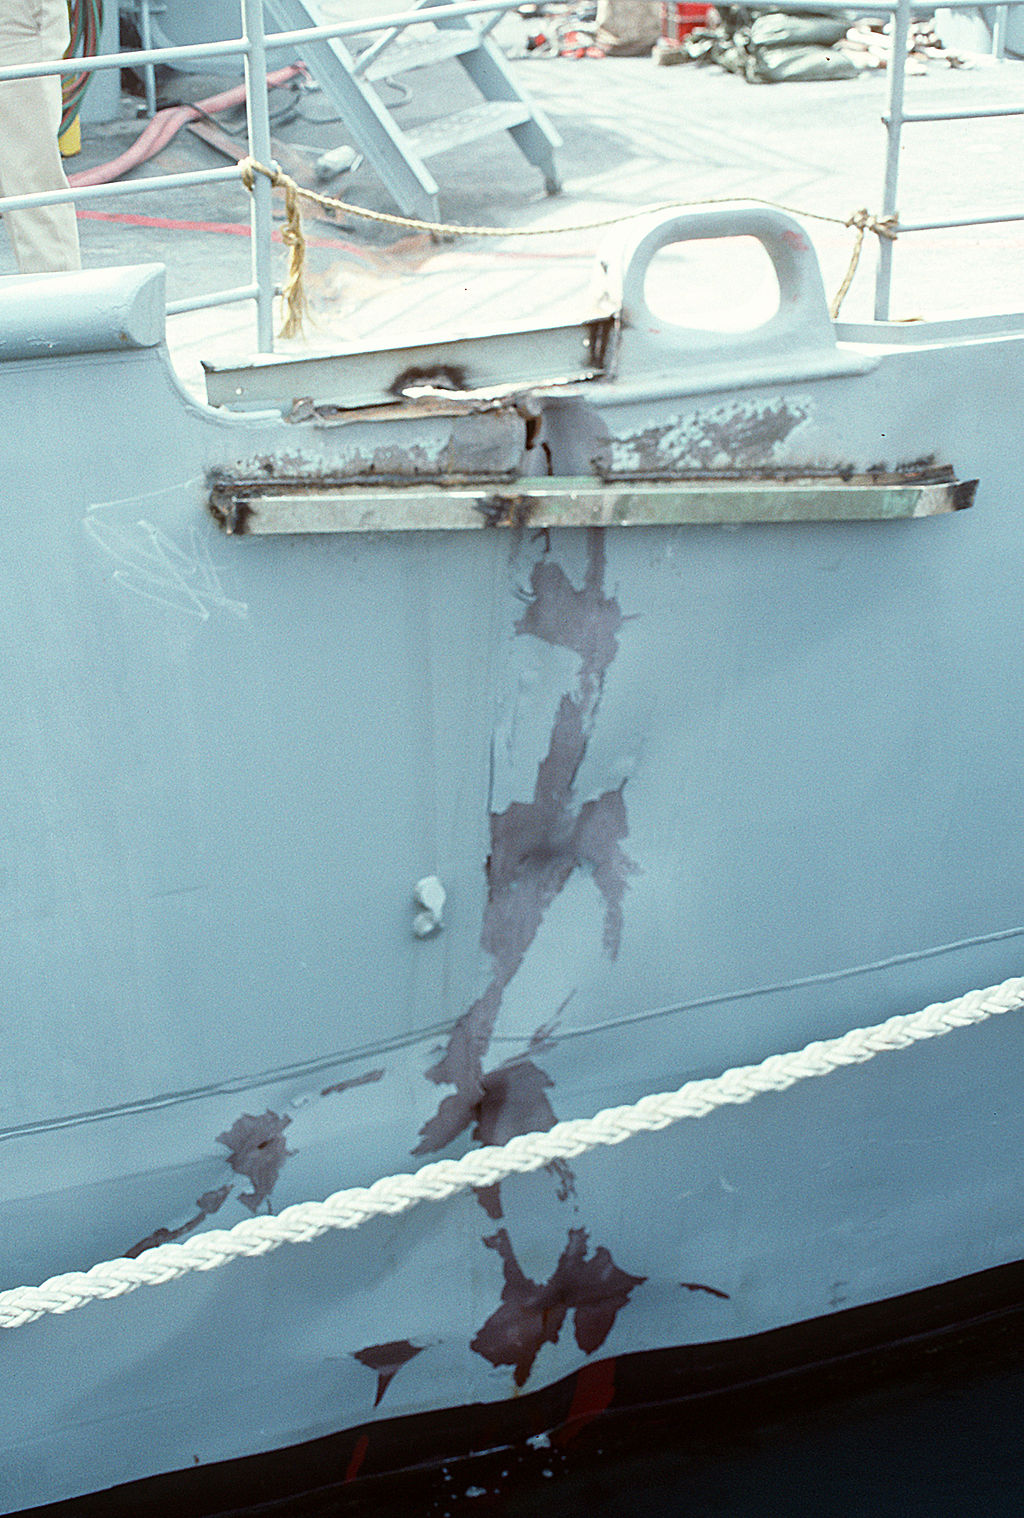 A close-up view of a crack in the hull of the Aegis-guided missile cruiser USS Princeton, damage sustained when the vessel struck an Iraqi mine on 18 Feb 1991. (CW02 Bailey/U.S. Navy Photo)